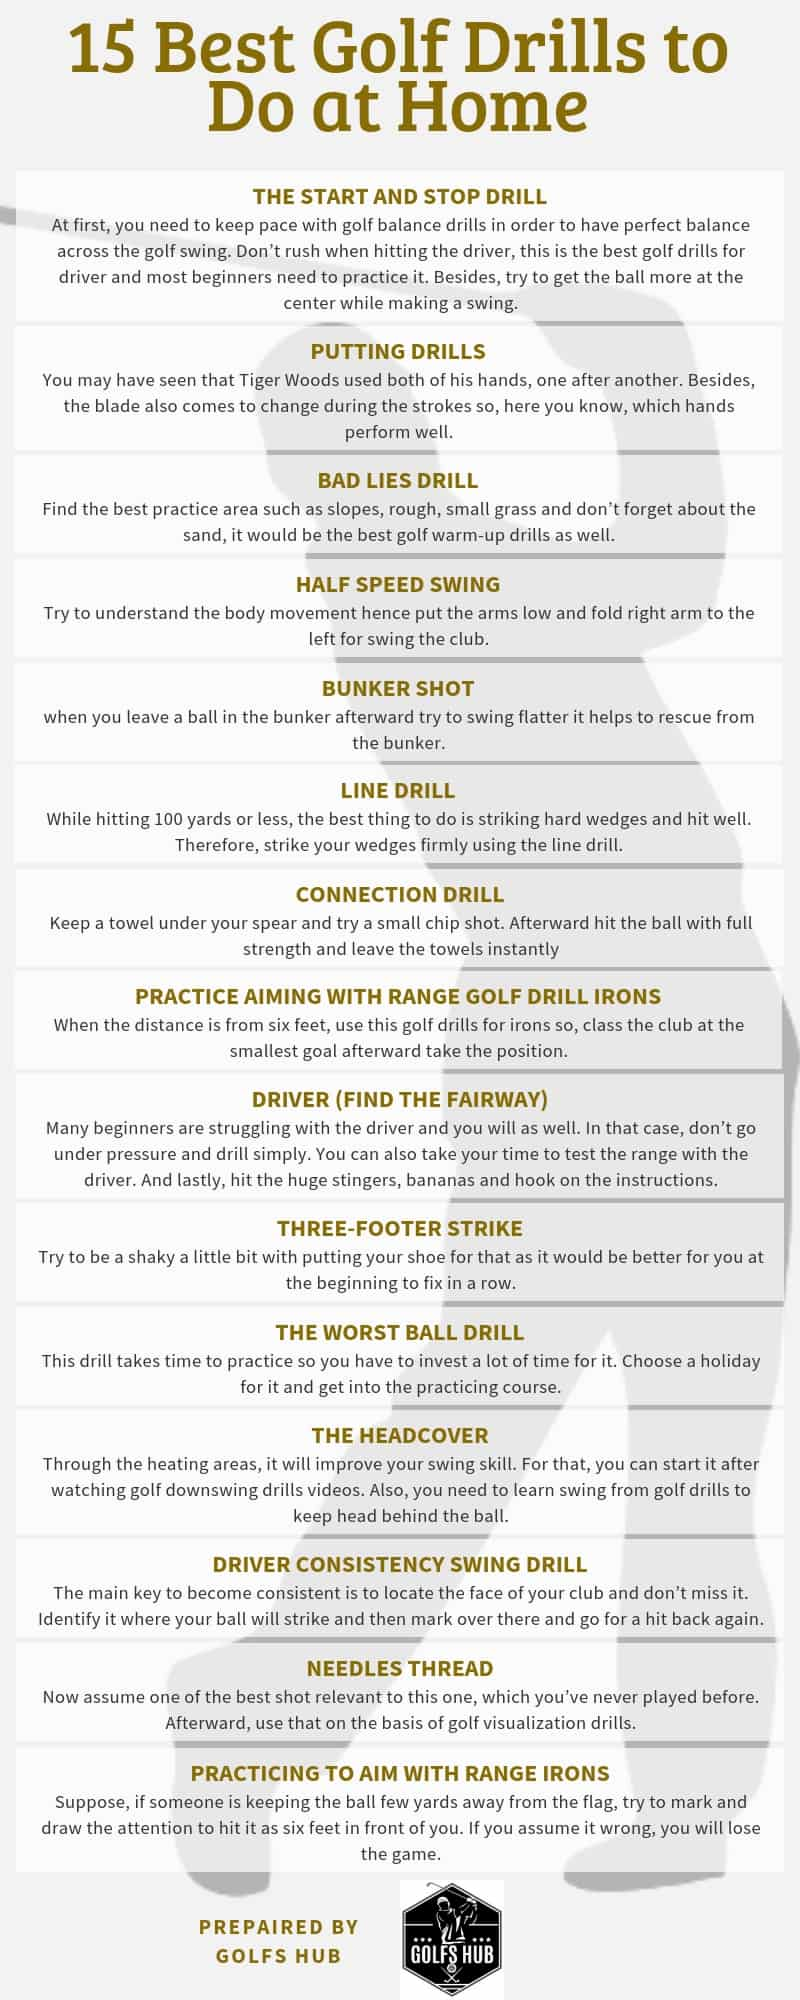 Best Golf Drills to Do at Home